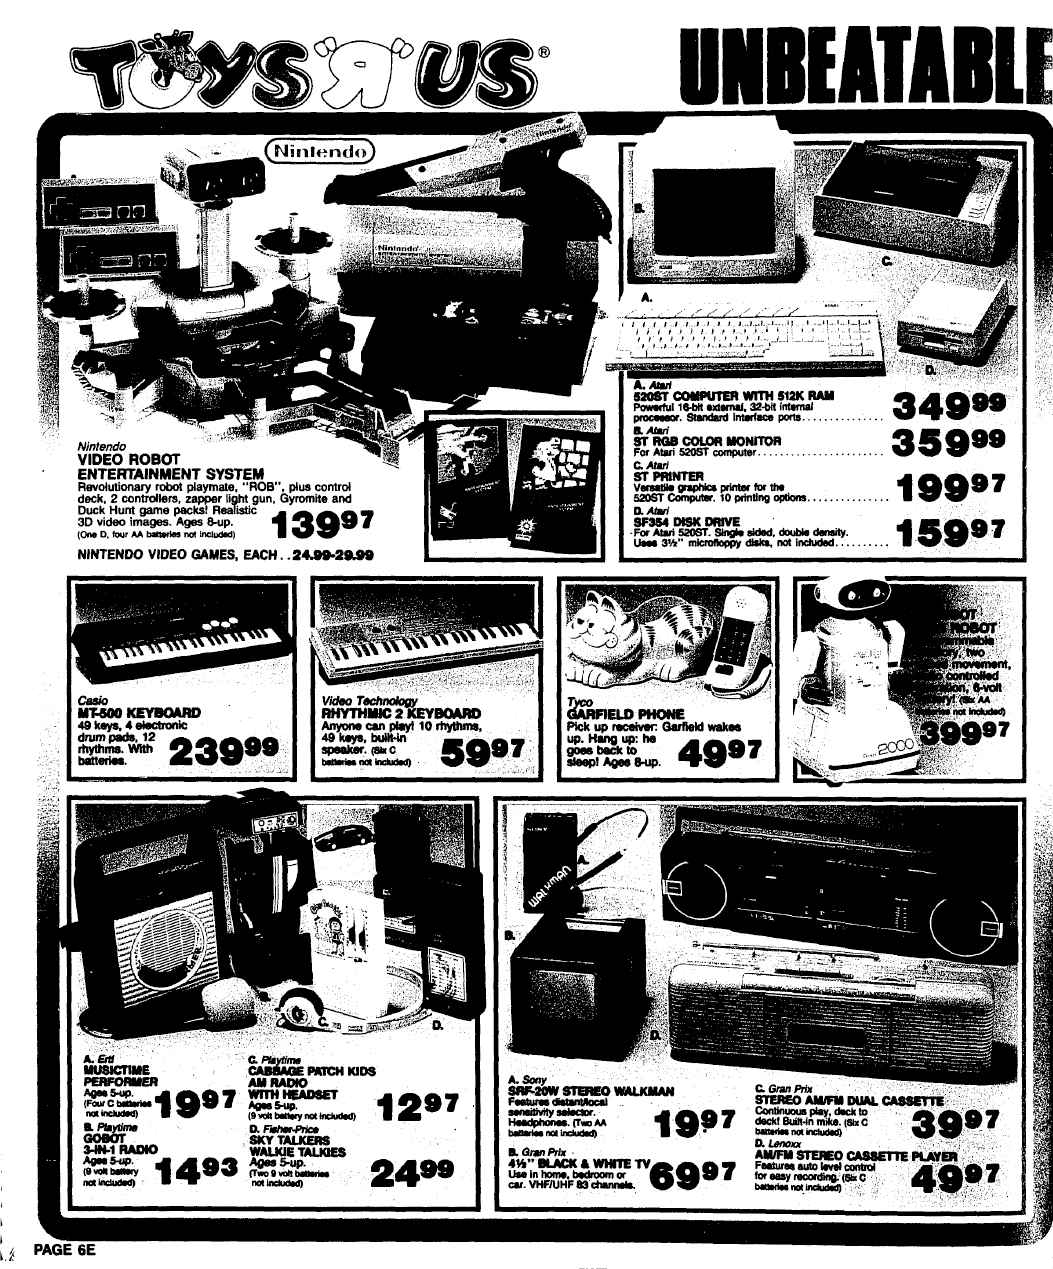 NES Ad - Toys R Us - 11-06-1986- Wisconsin State Journal - Credit Frank Cifaldi